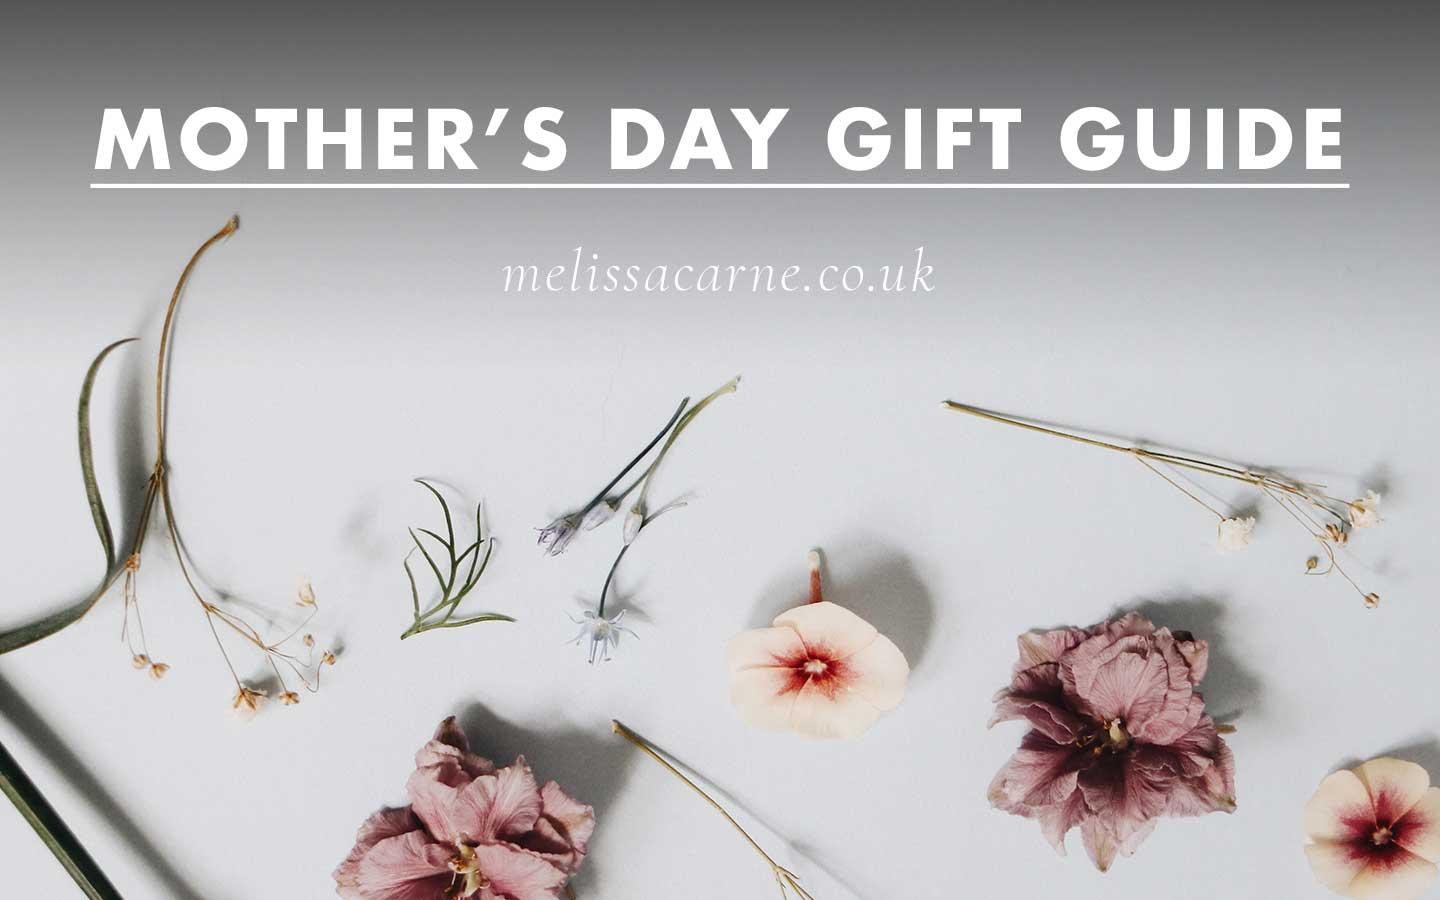 cornish mother's day gift guide